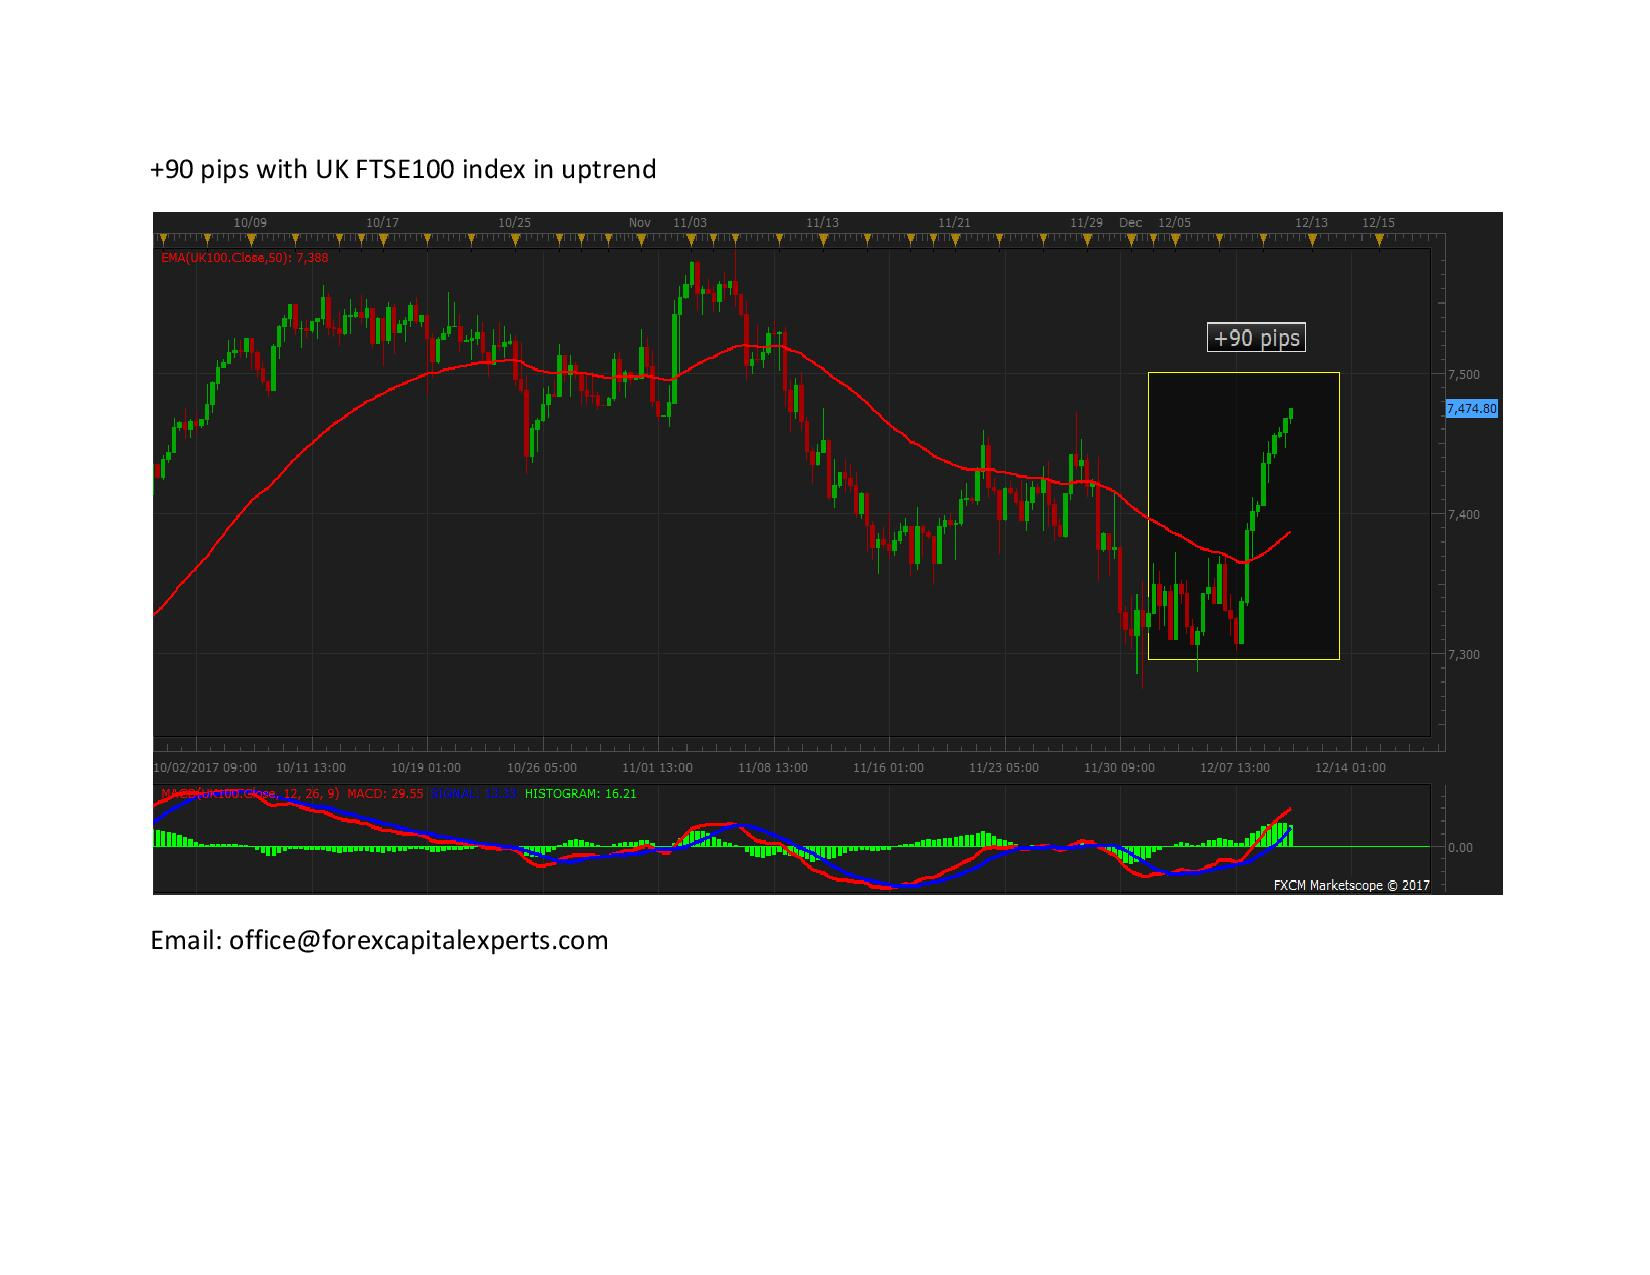 90 pips with UK FTSE100 index in uptrend page 001